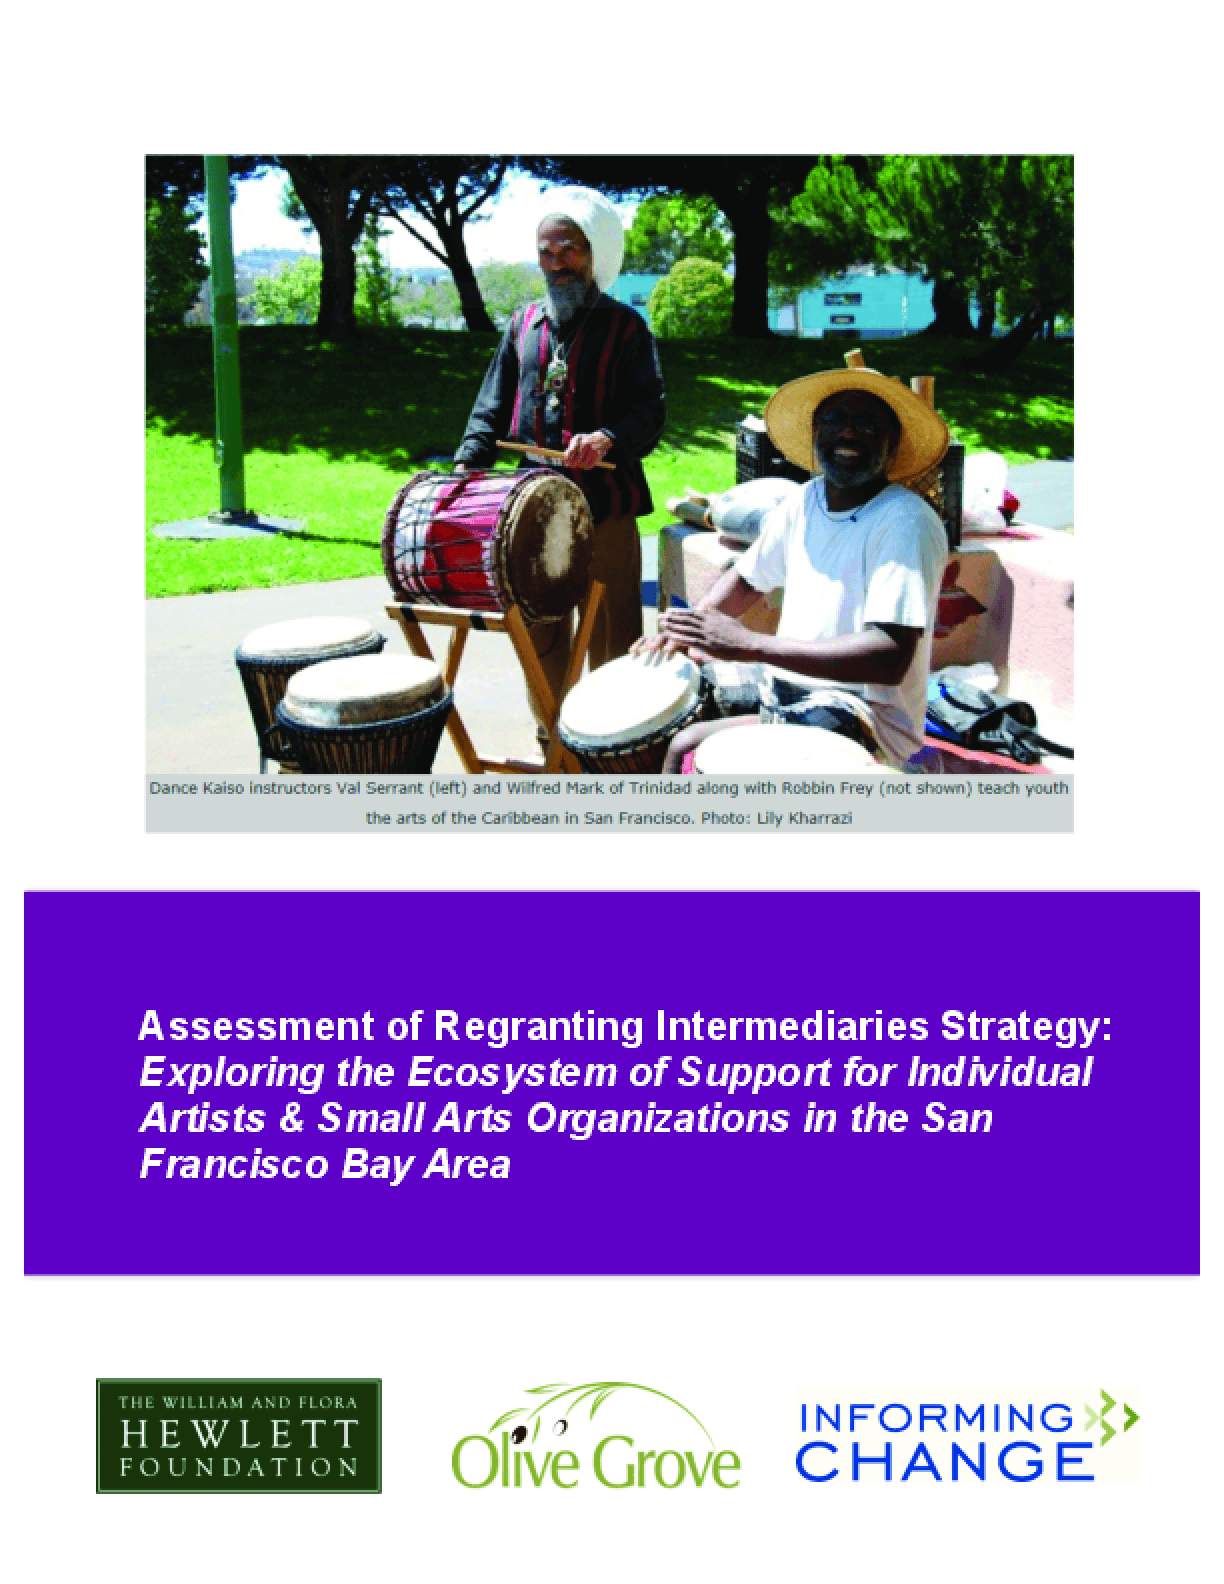 Assessment of Regranting Intermediaries Strategy: Exploring the Ecosystem of Support for Individual Artists & Small Arts Organizations in the San Francisco Bay Area